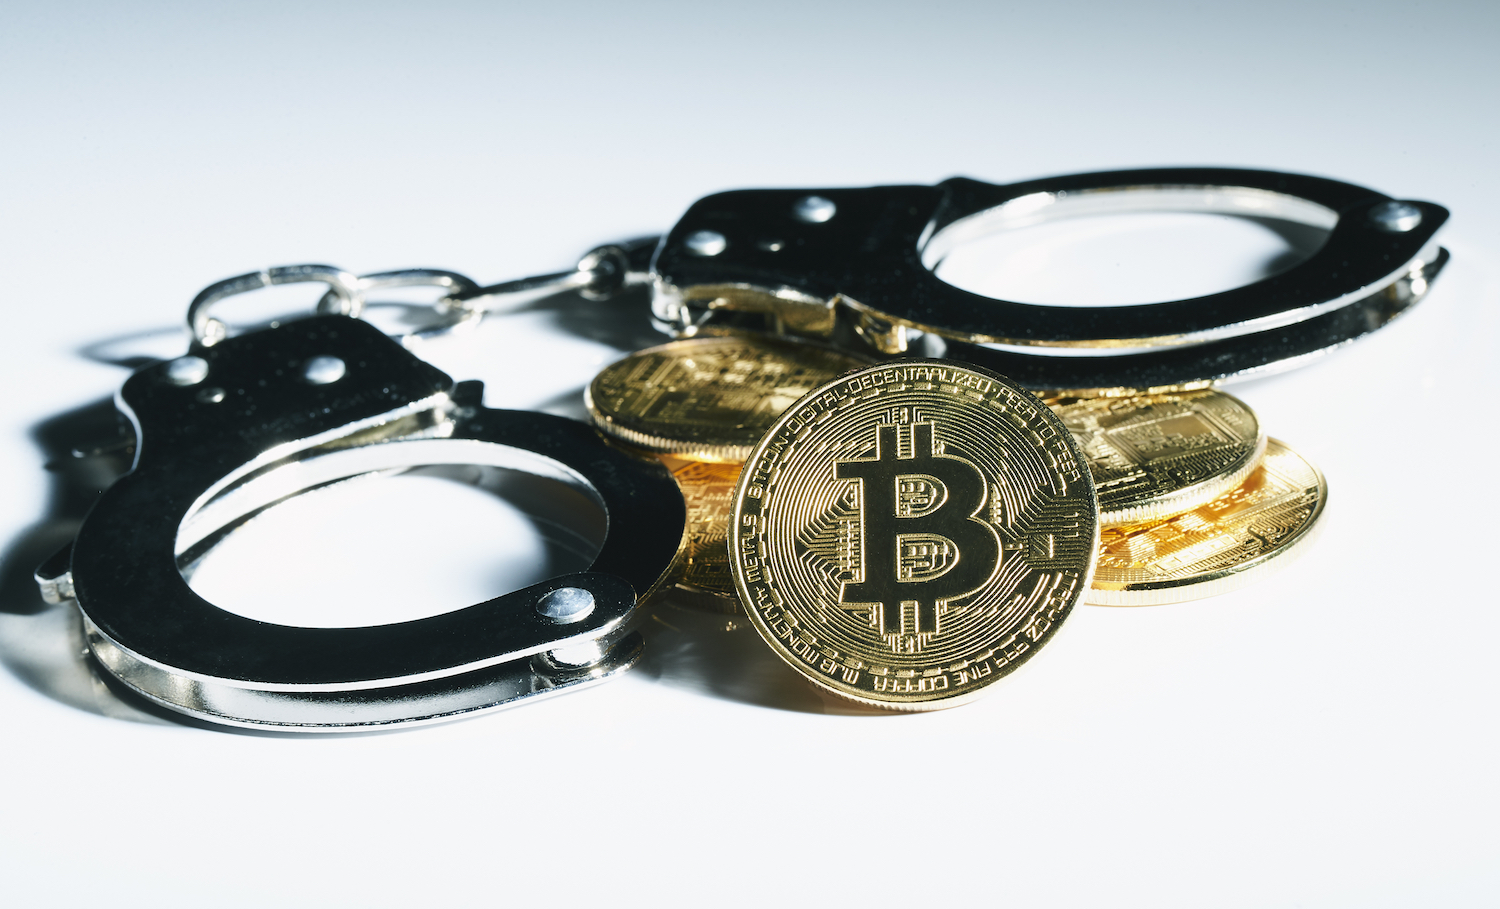 21-Year Old American Purported SIM Swapper Arrested for Alleged Theft of $1 Mln in Crypto